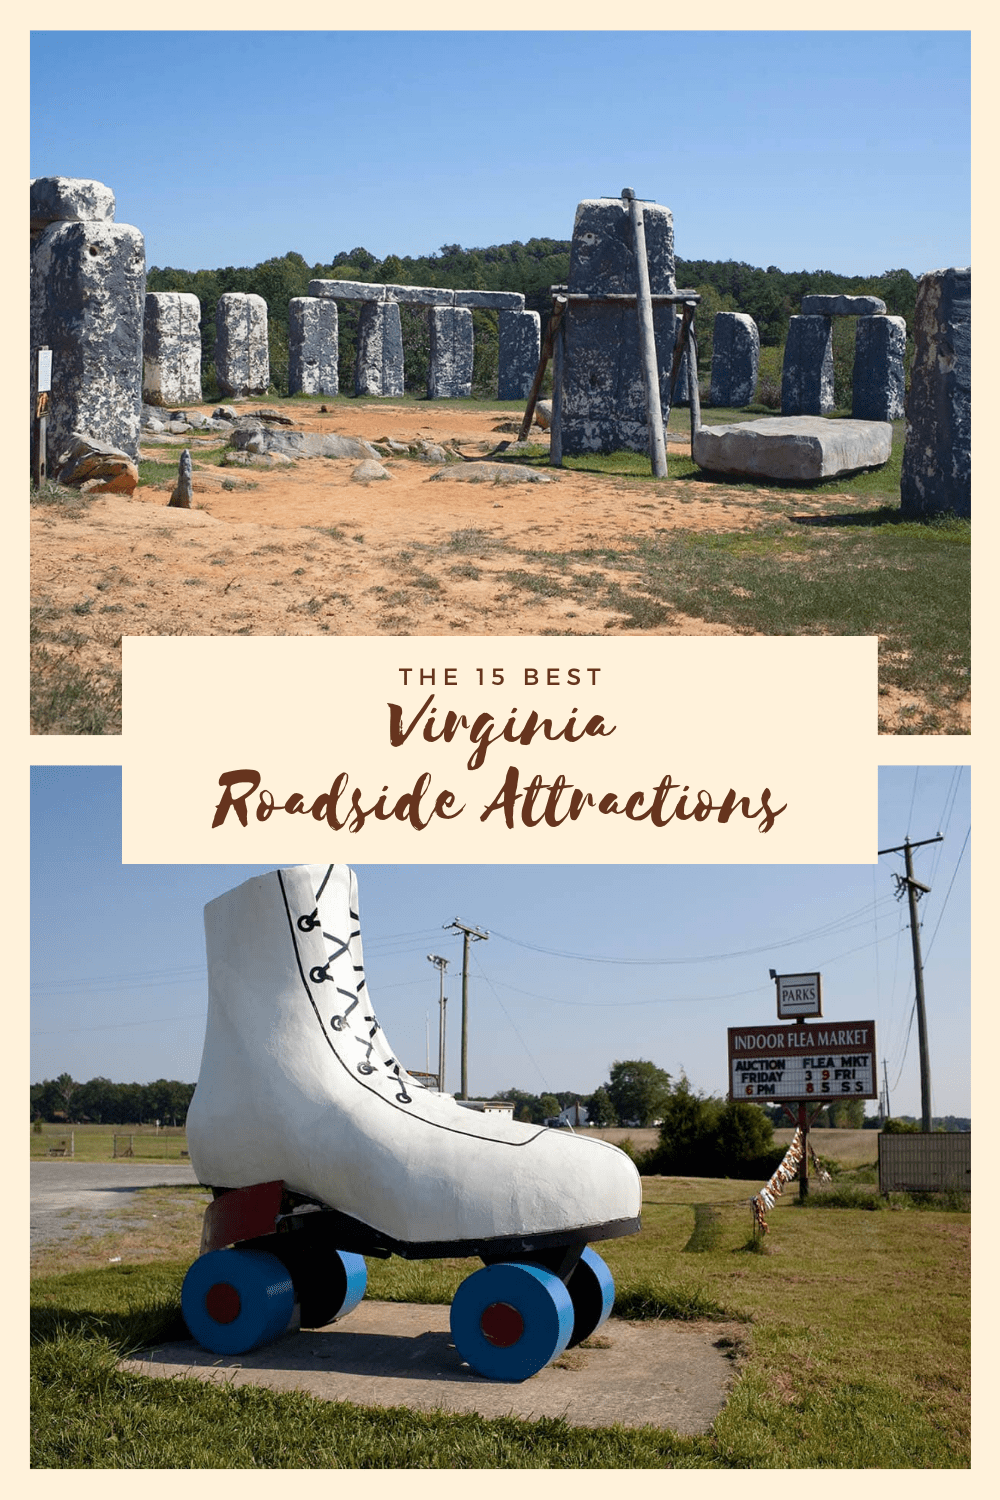 The best Virginia roadside attractions to visit on a Virginia road trip. Add these roadside oddities to your travel bucket list, itinerary, or route map! Fun road trip stops for kids or adults! #VirginiaRoadsideAttractions #VirginiaRoadsideAttraction #RoadsideAttractions #RoadsideAttraction #RoadTrip #VirginiaRoadTrip #VirginiaRoadTripBucketLists #VirginiaBucketList #VirginiaRoadTripIdeas #WeirdRoadsideAttractions